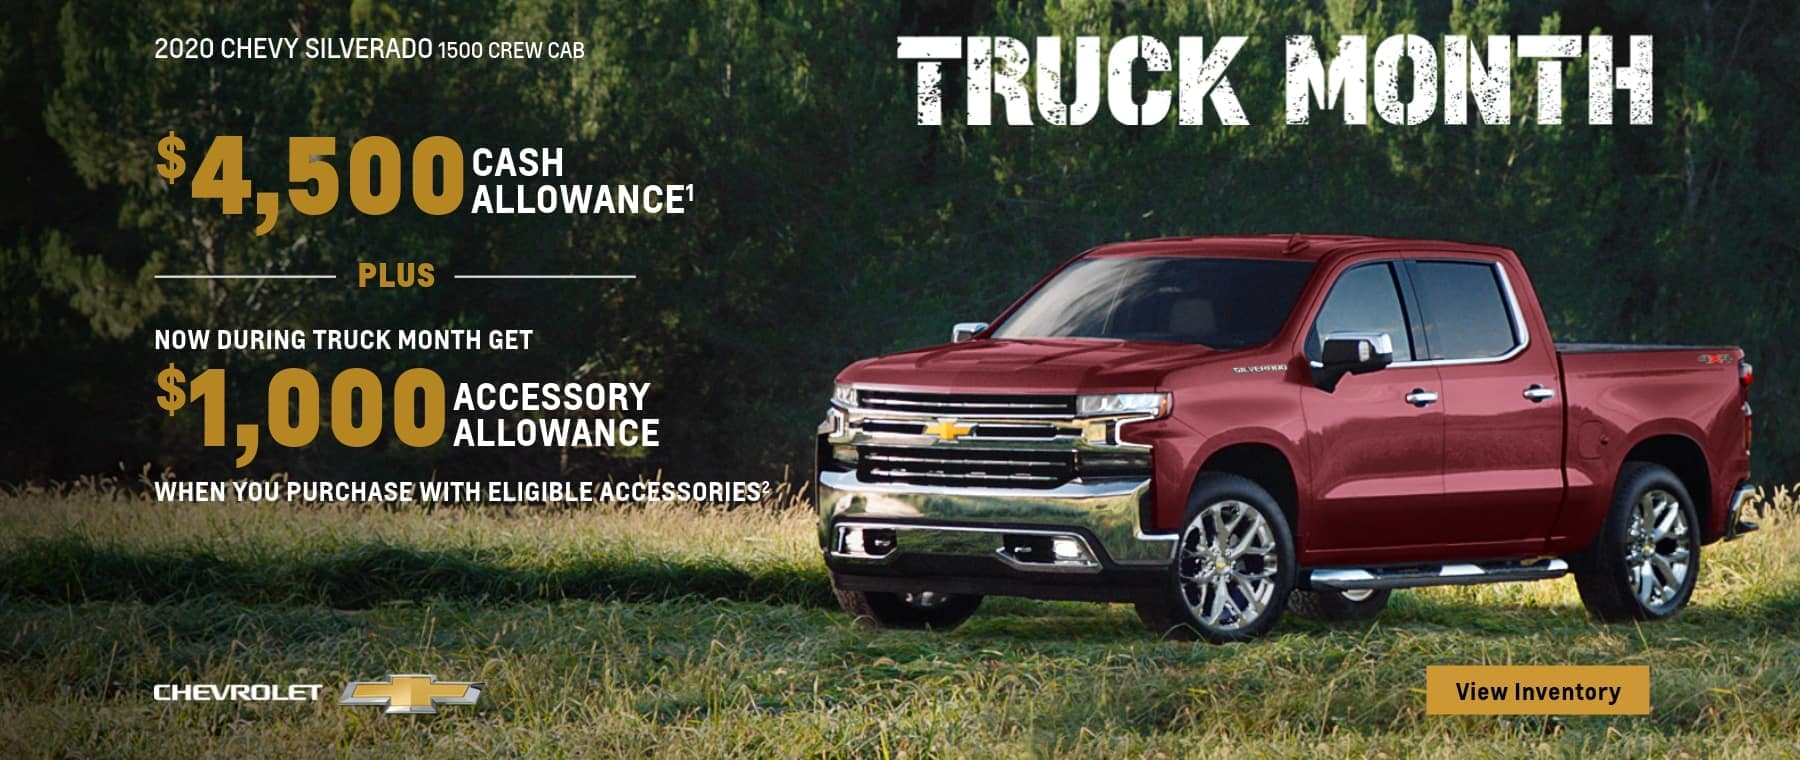 $4,500 cash allowance plus now during truck month you get $1,000 Accessory allowance when you purchase with eligible accessories.